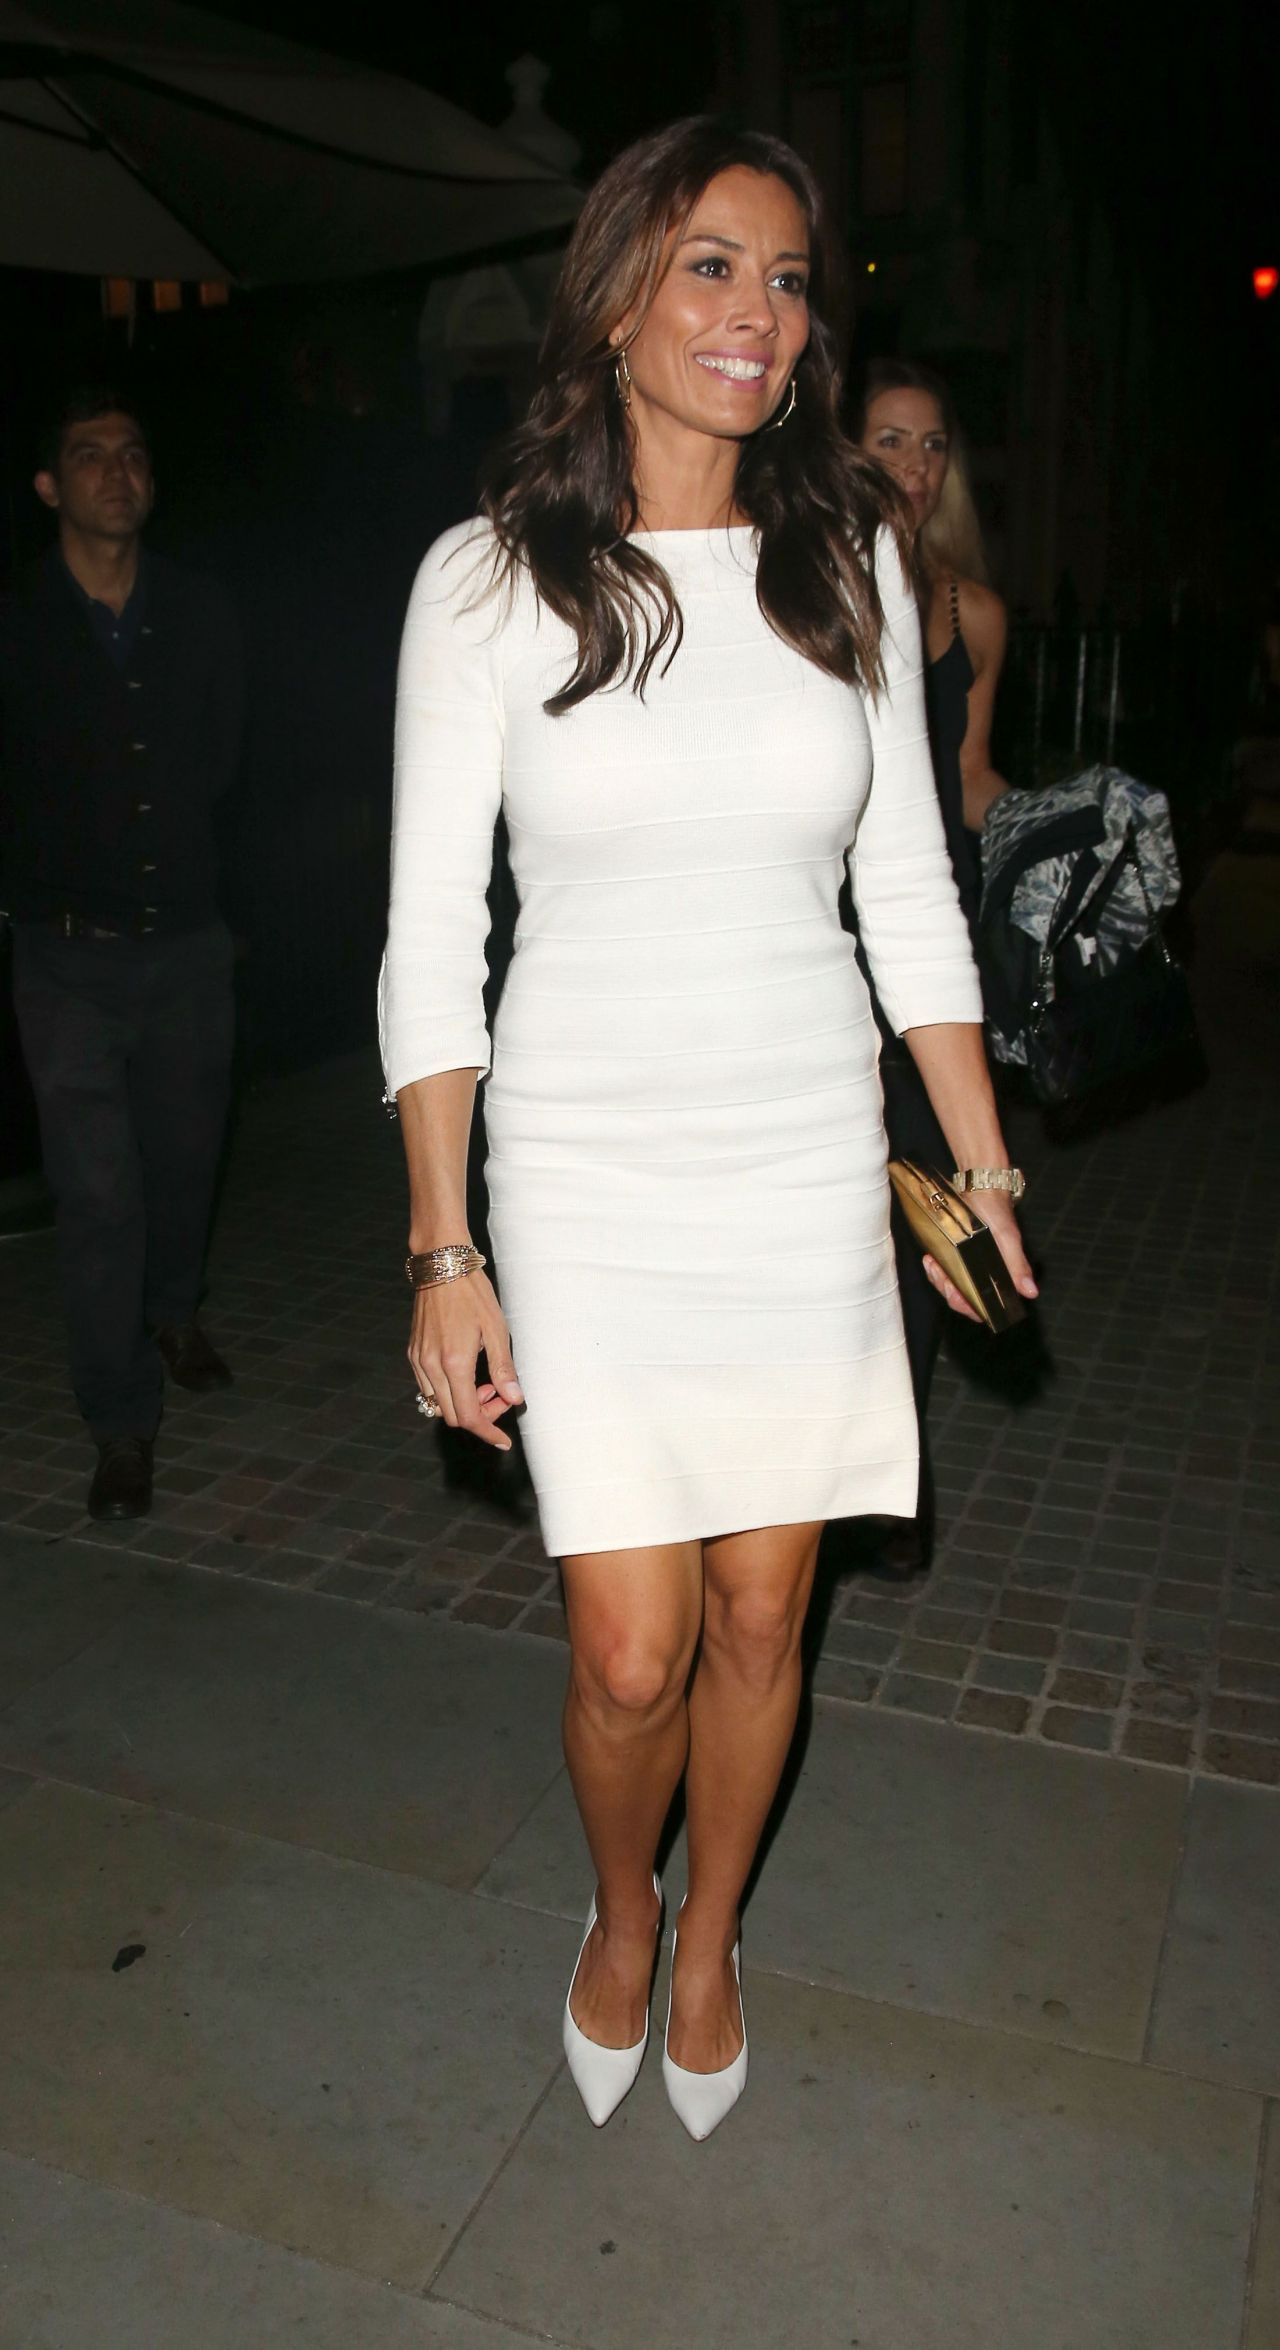 Melanie Sykes Night Out Style - Chiltern Firehouse (2014)